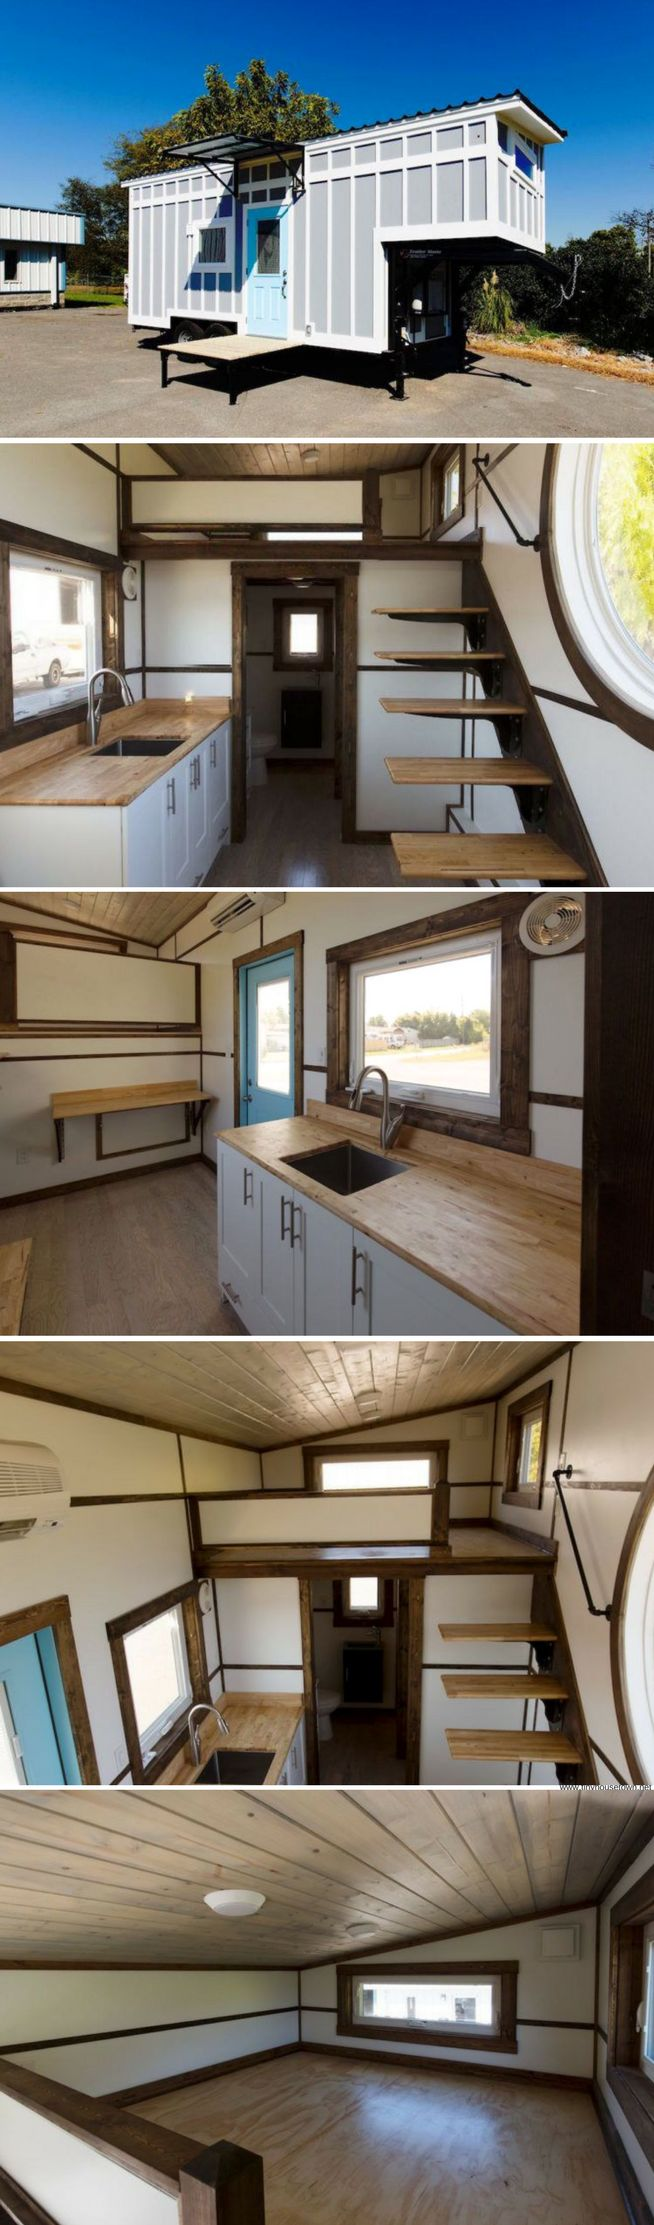 The View - Tiny House Chattanooga